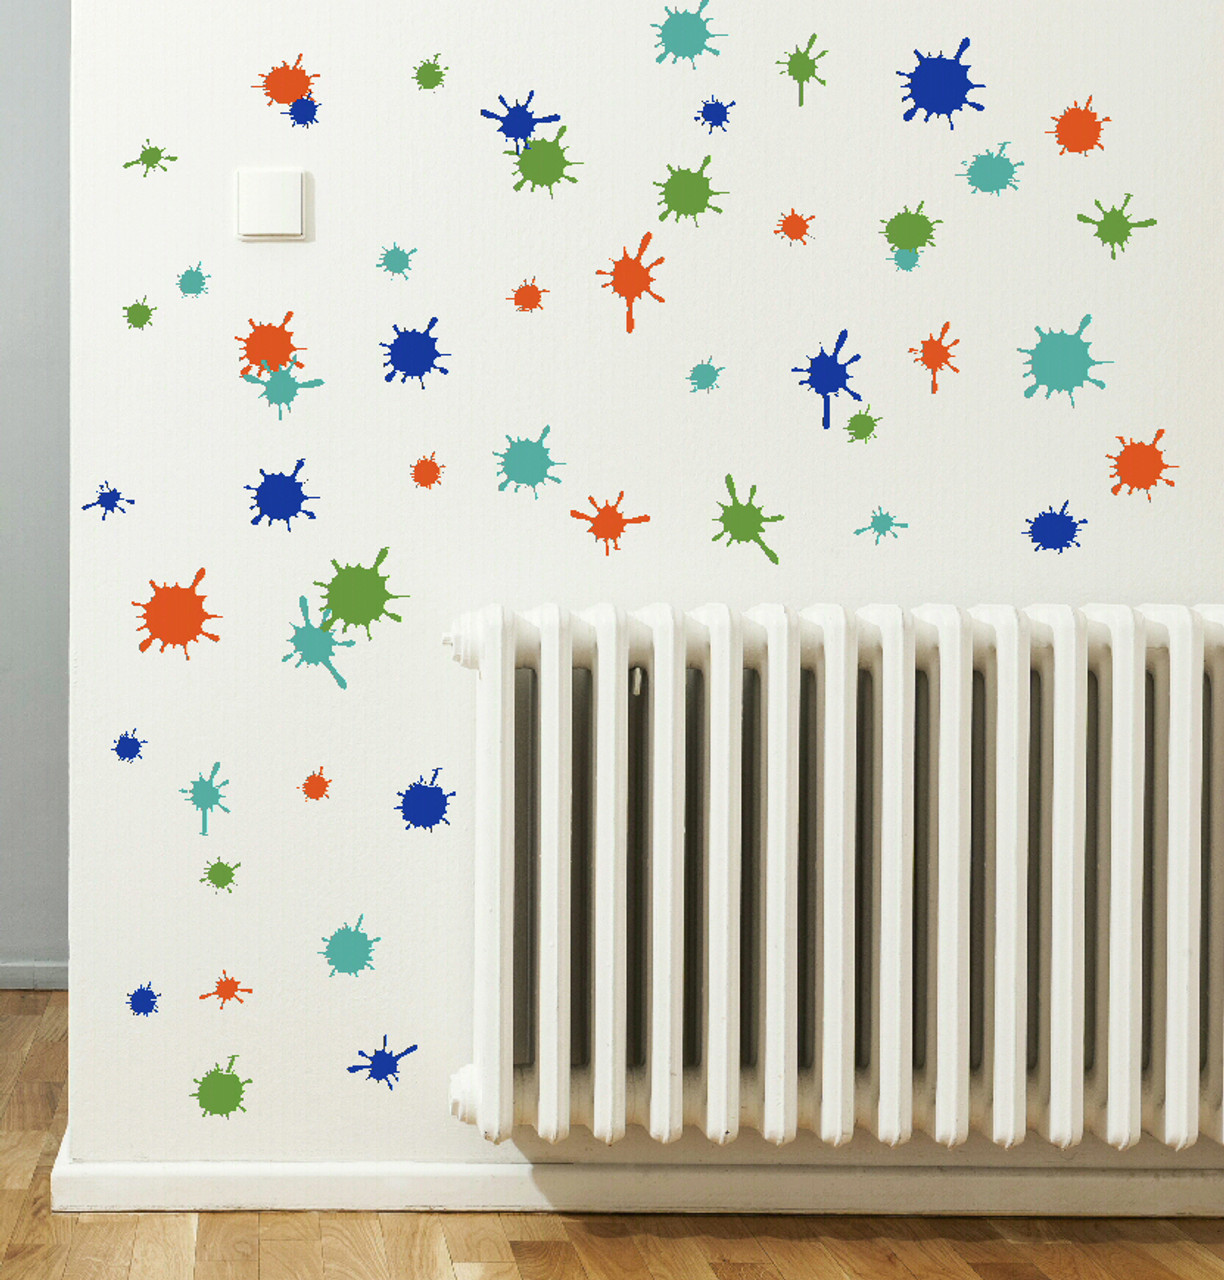 Turquoise Orange Traffic Blue Olive Green Mud Paint Splatter Vinyl Wall  Stickers Shapes For Daycare,